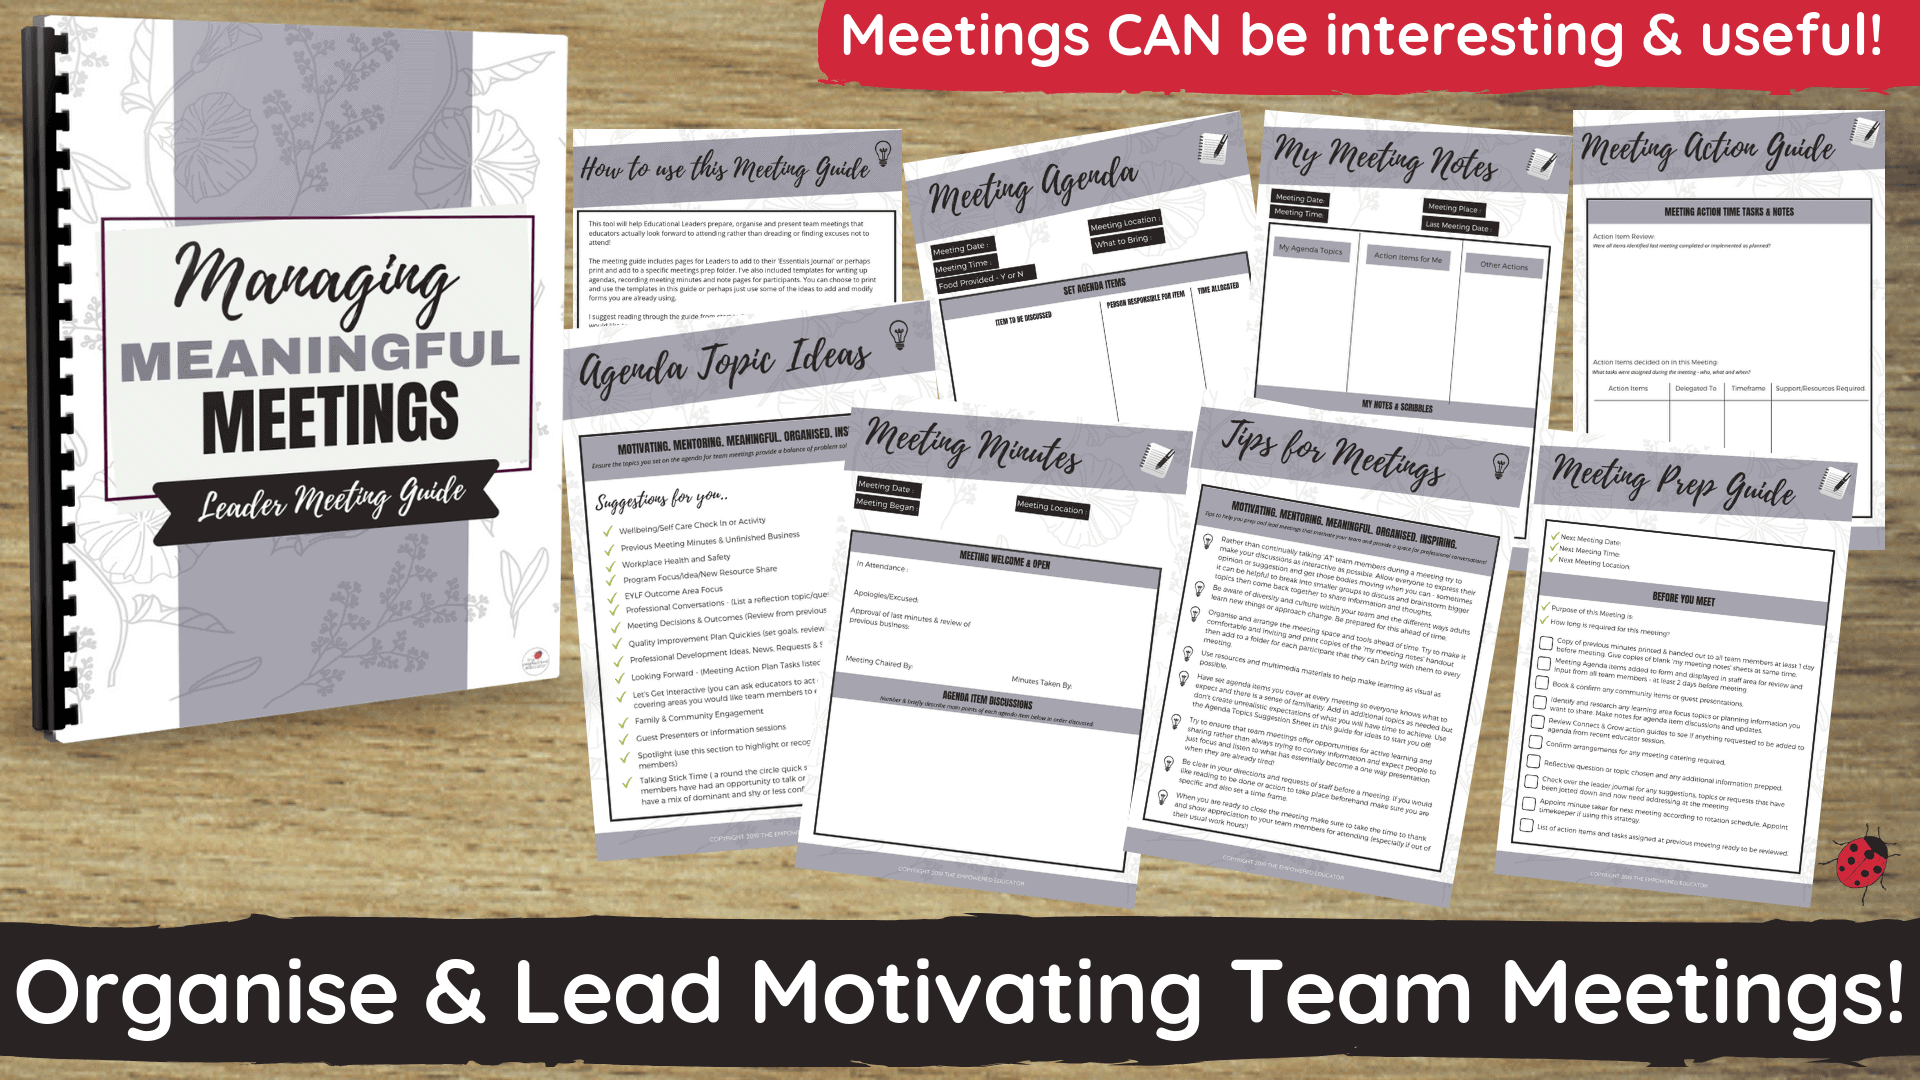 Educational leaders - use this guide to help you organise, prep and present meaningful and engaging team meetings that educators will want to attend!